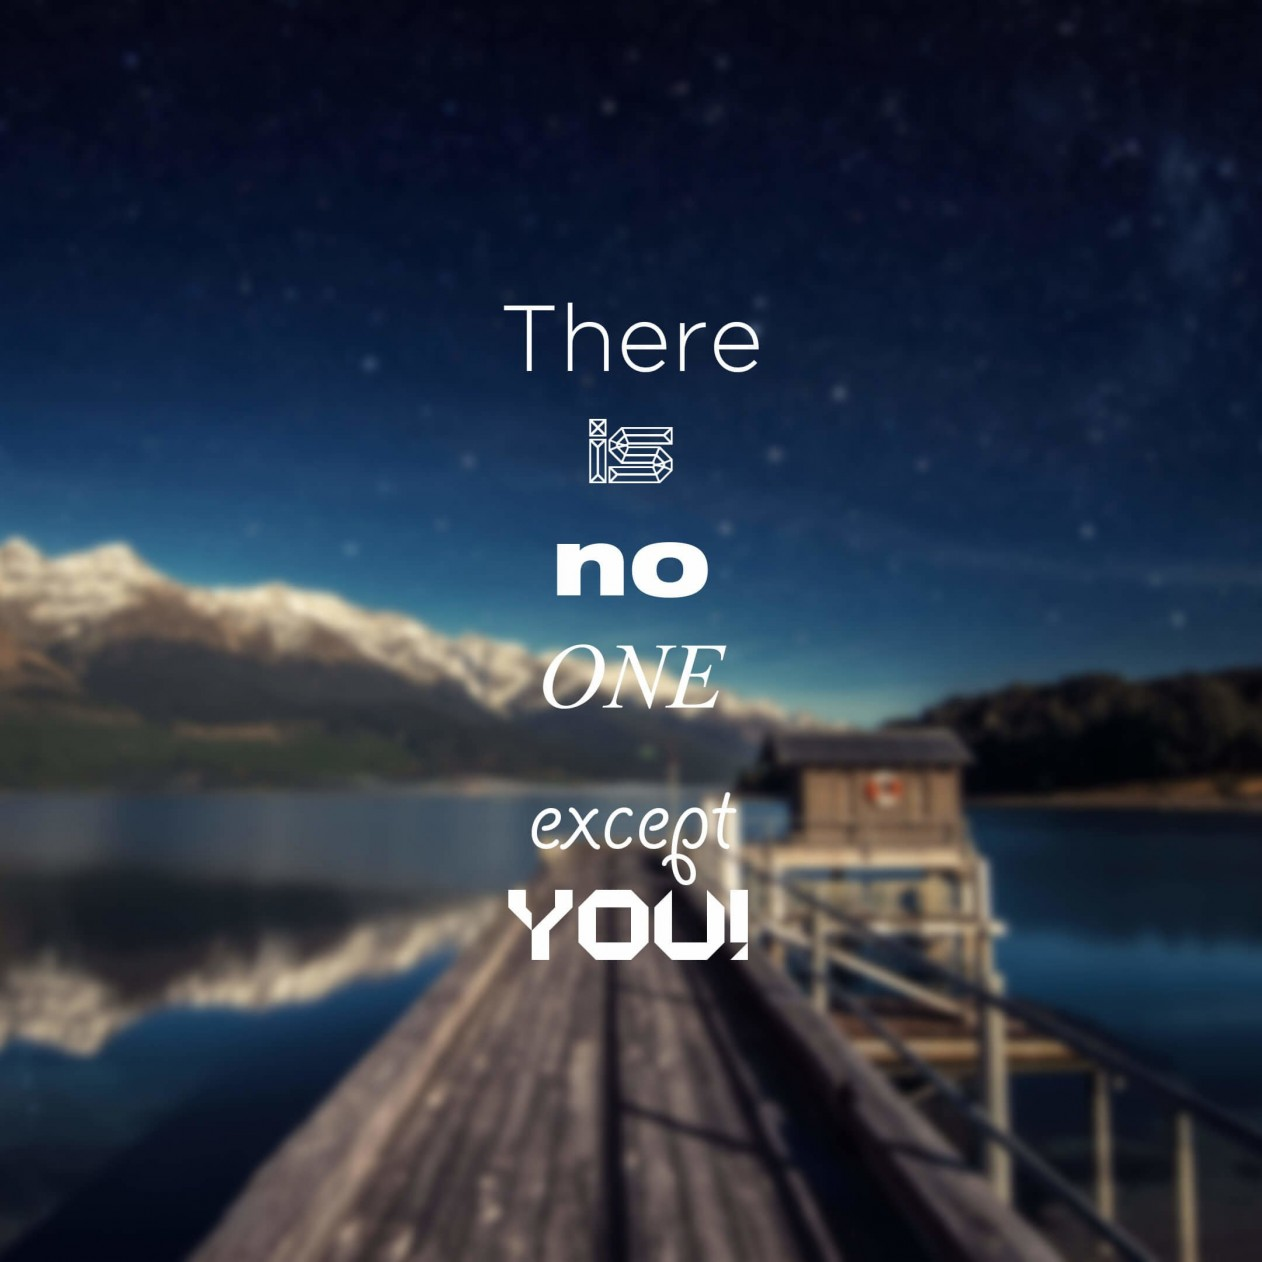 There Is No One Except You Wallpaper for Apple iPad mini